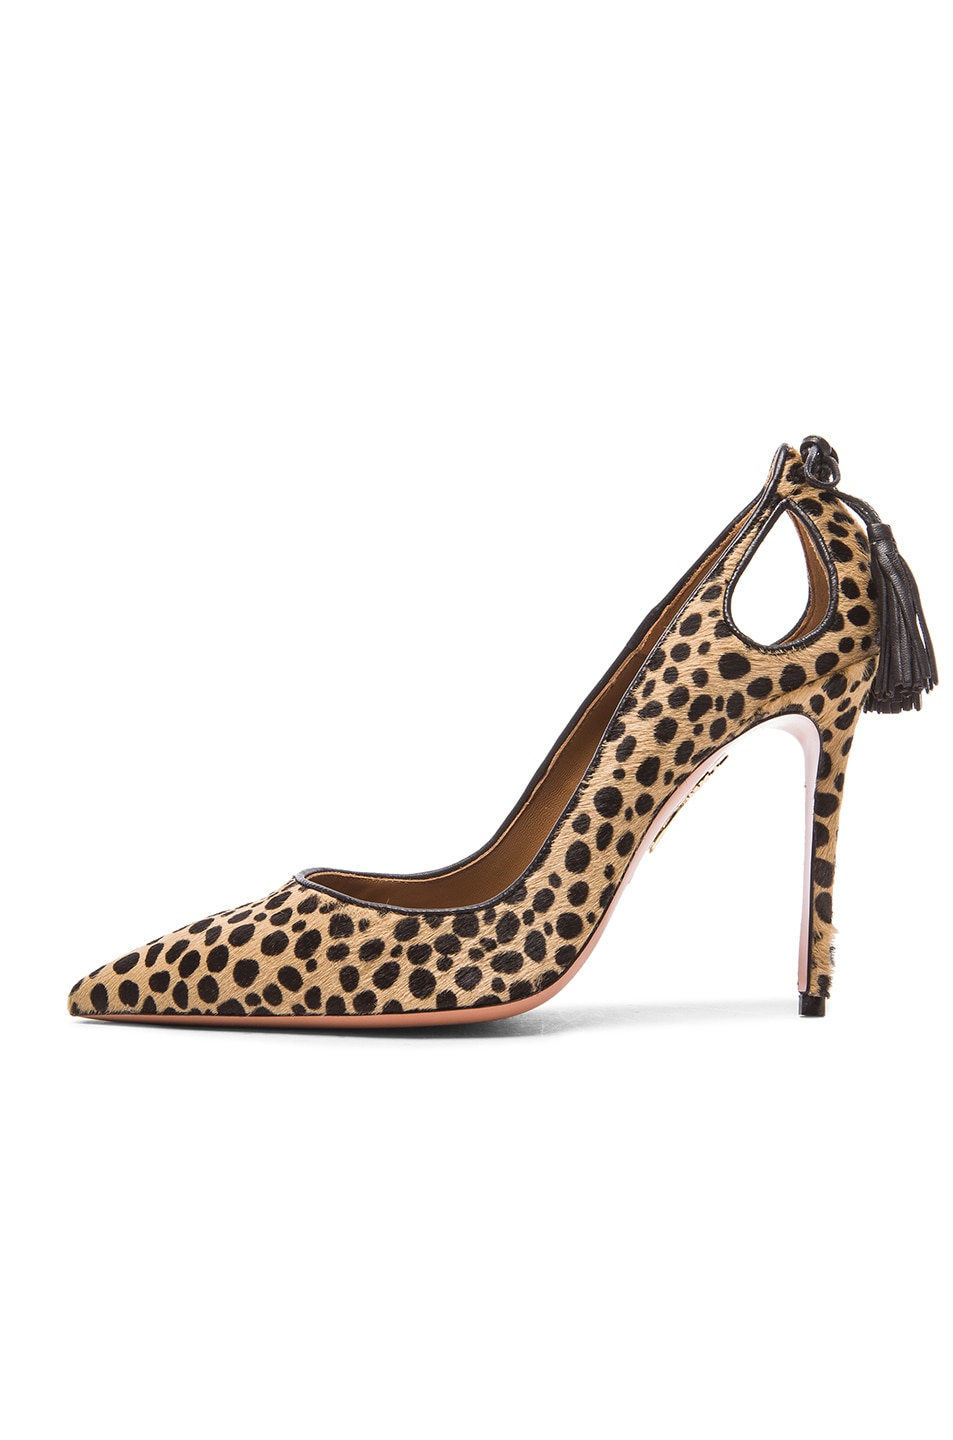 Image 5 of Aquazzura Forever Marilyn Calf Hair Heels in Cheetah